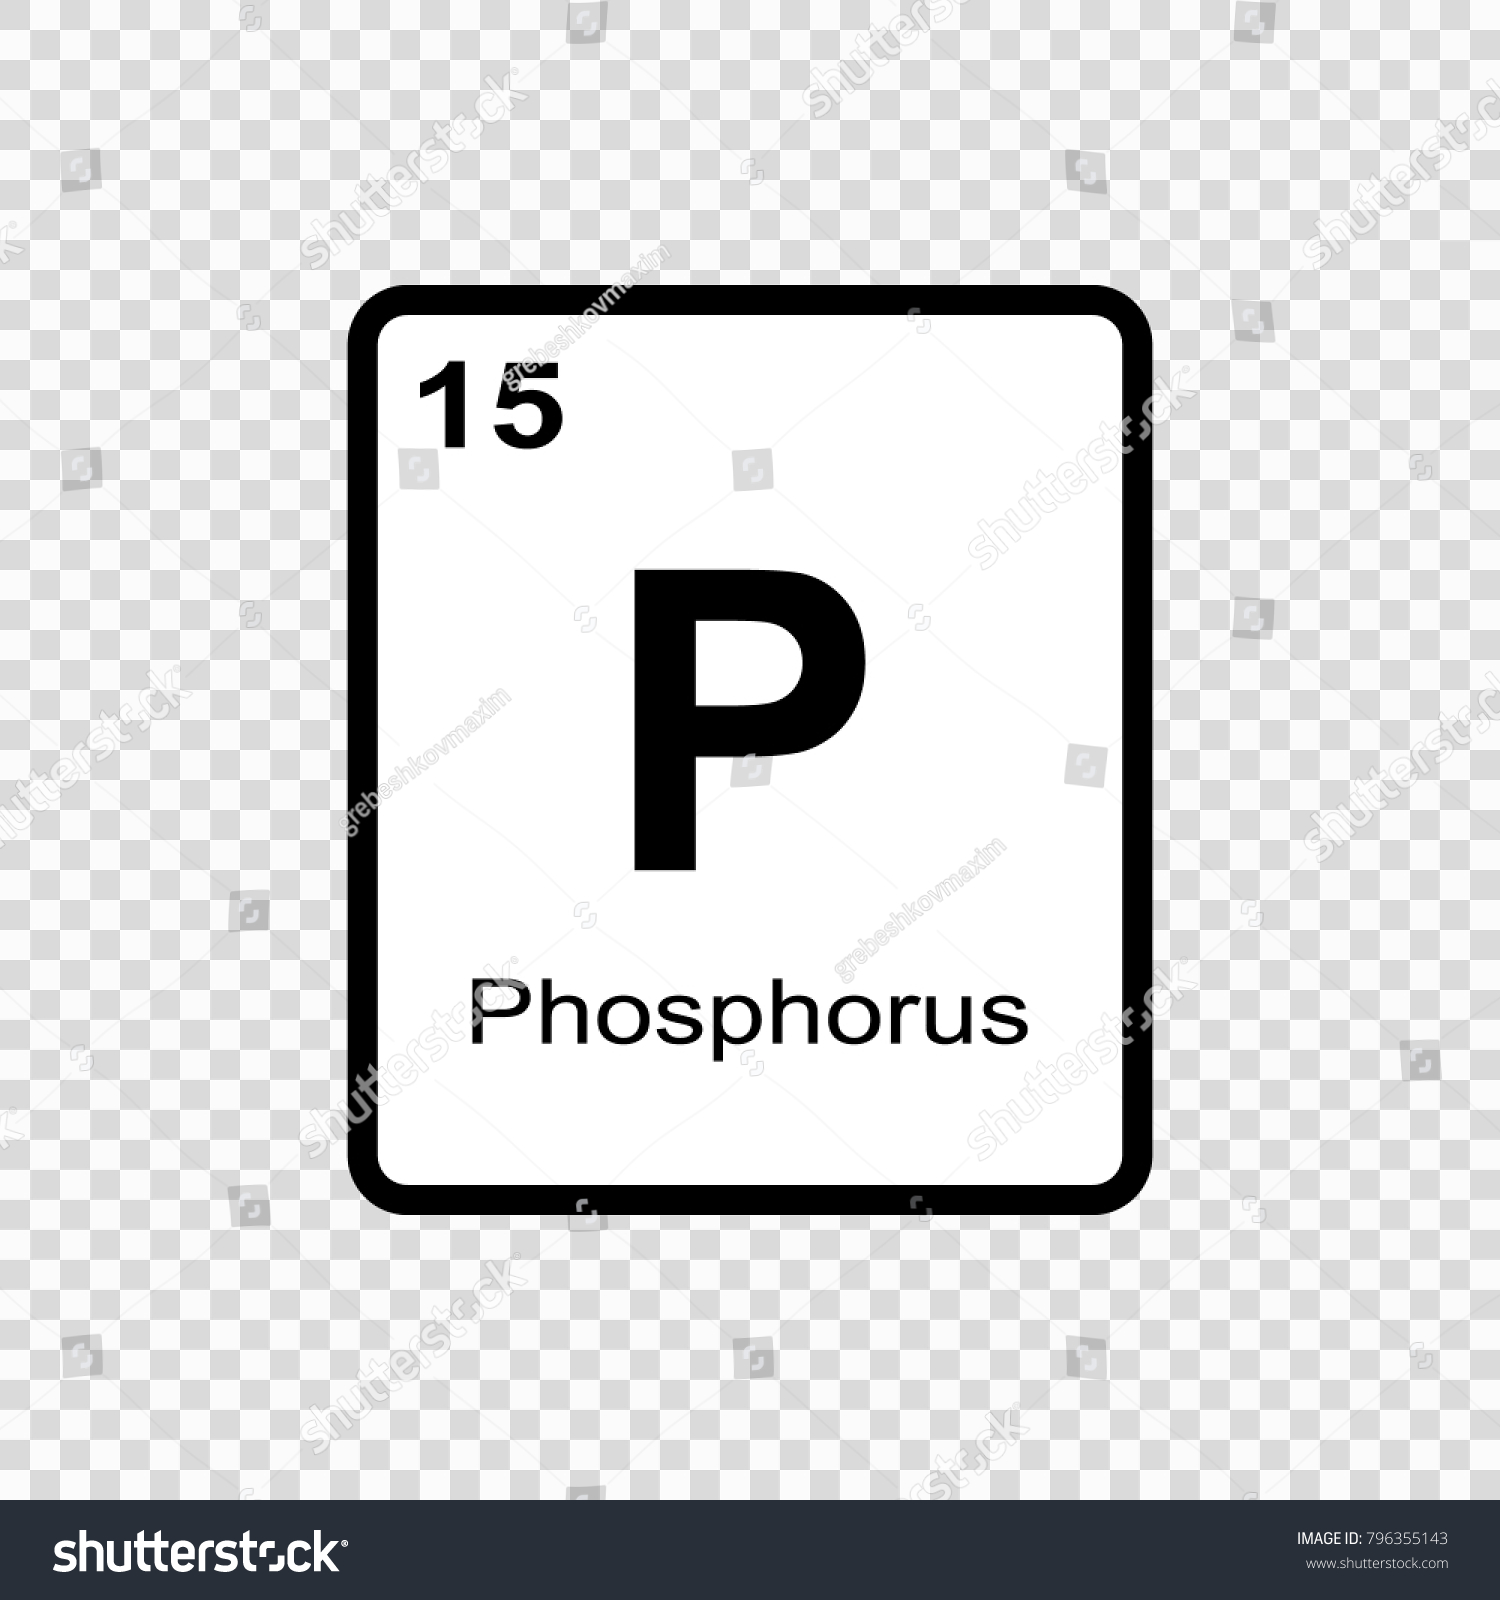 Phosphorus Chemical Element Sign Atomic Number Stock Vector Royalty